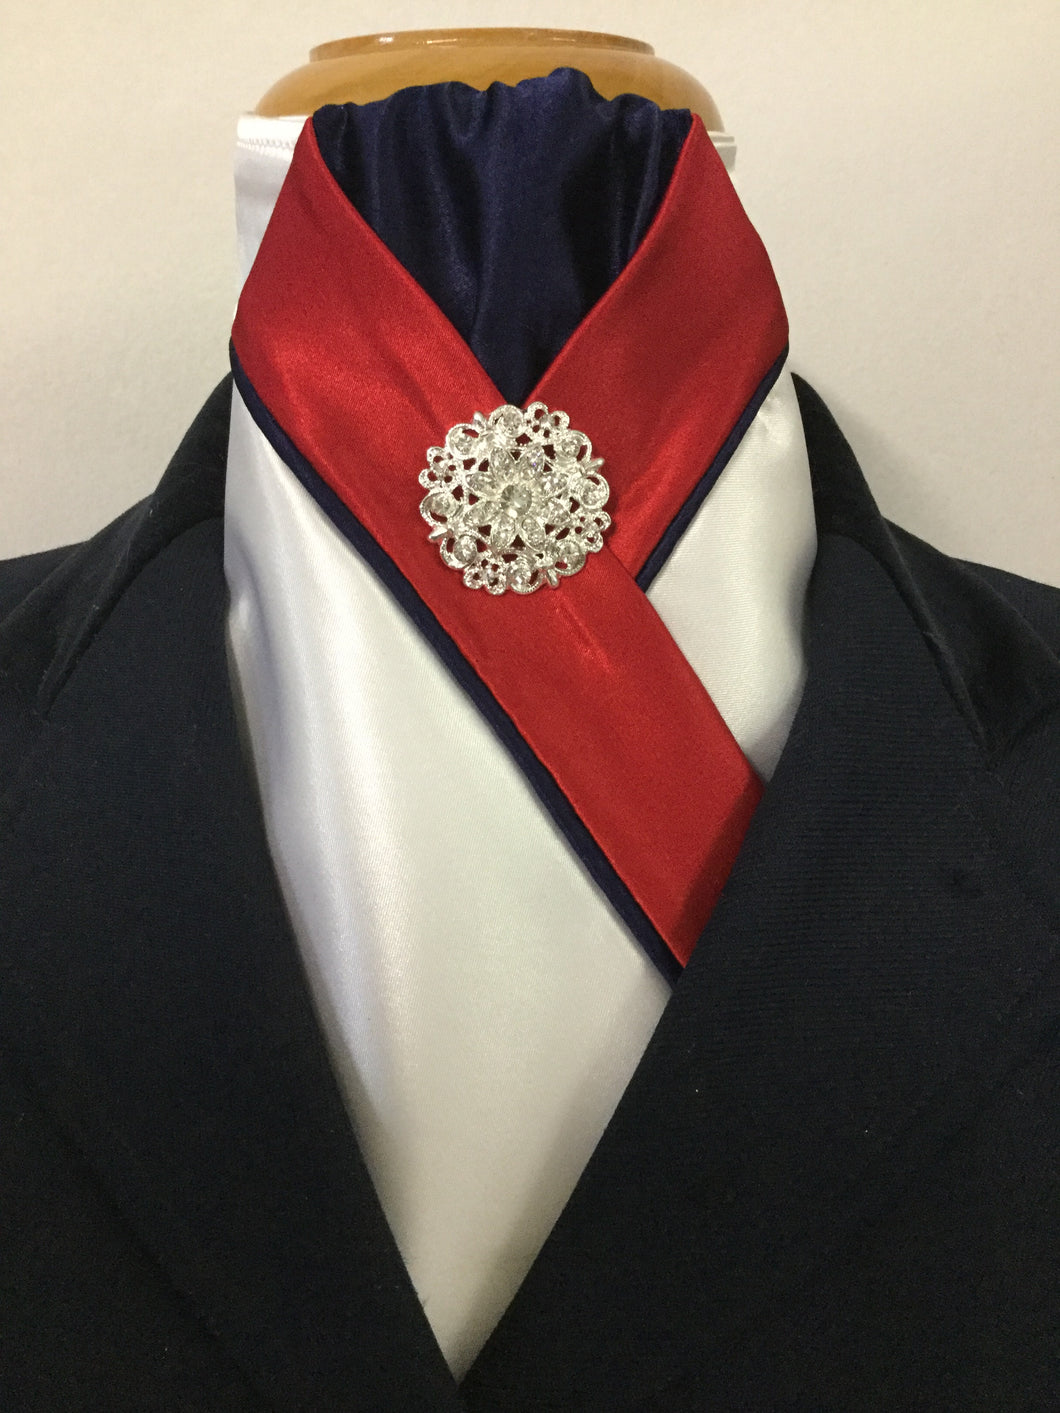 HHD 'The Royal' White Satin Pretied Stock Tie in Red & Navy Blue